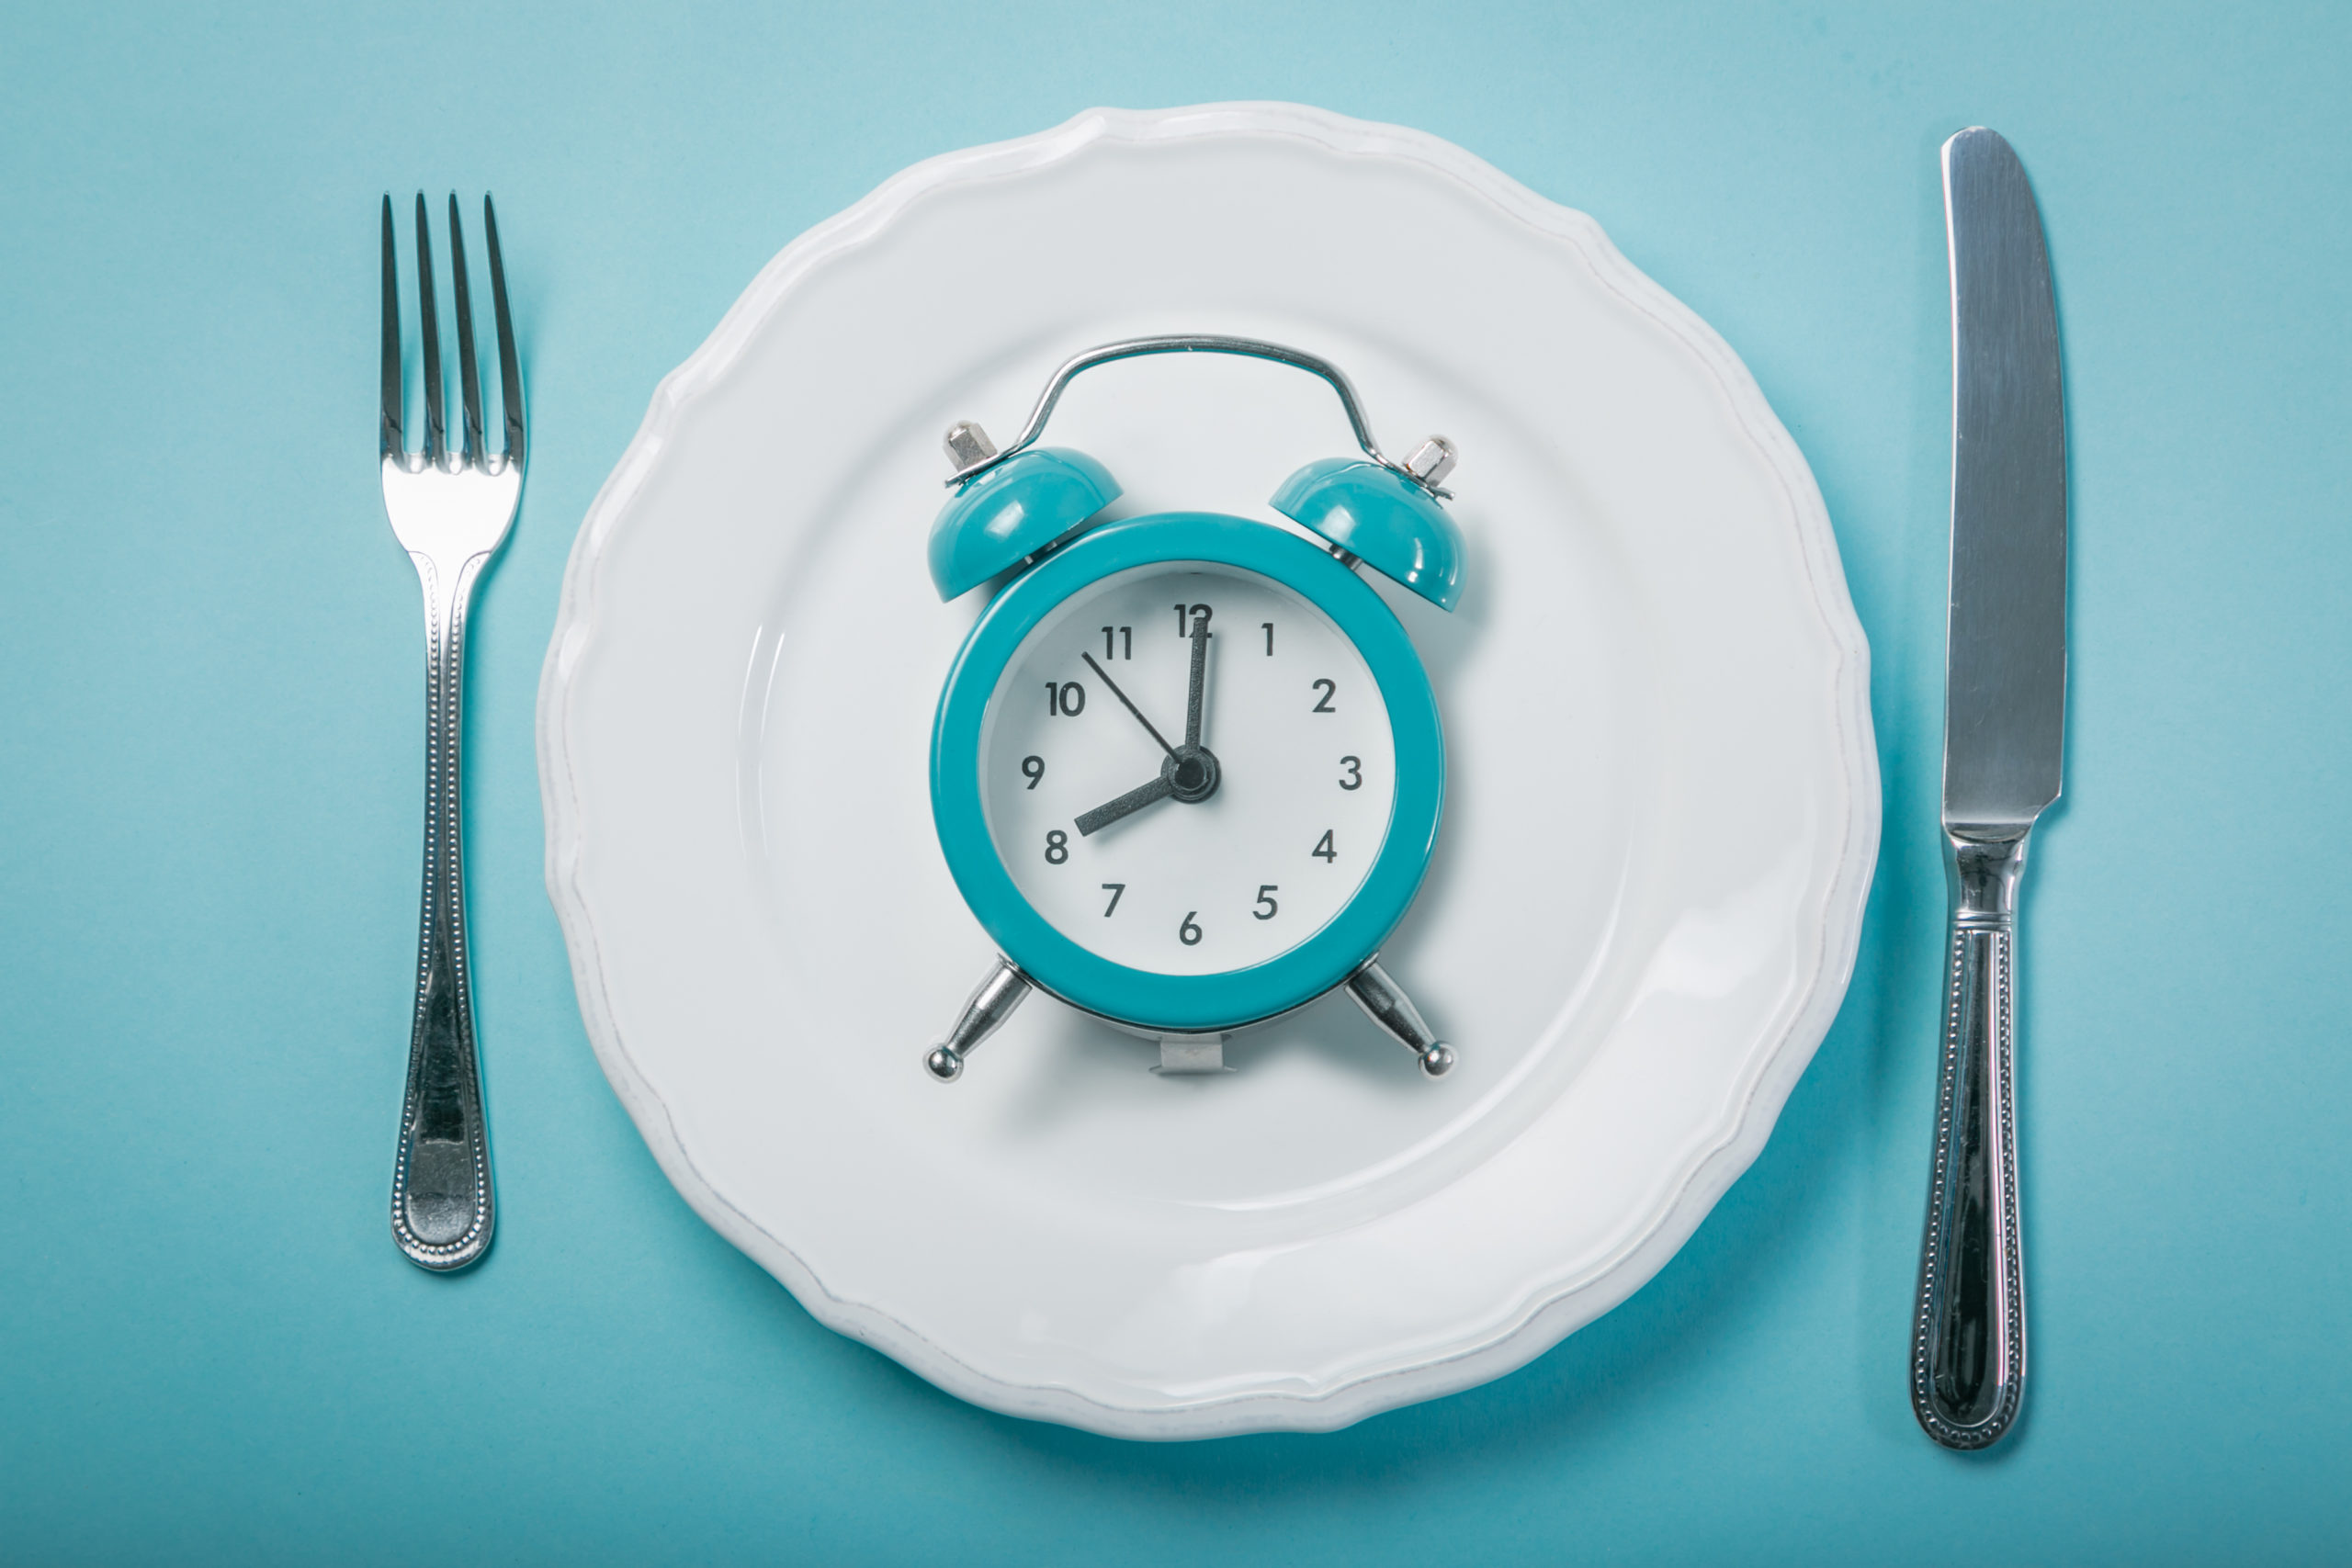 Clock on plate diet rules